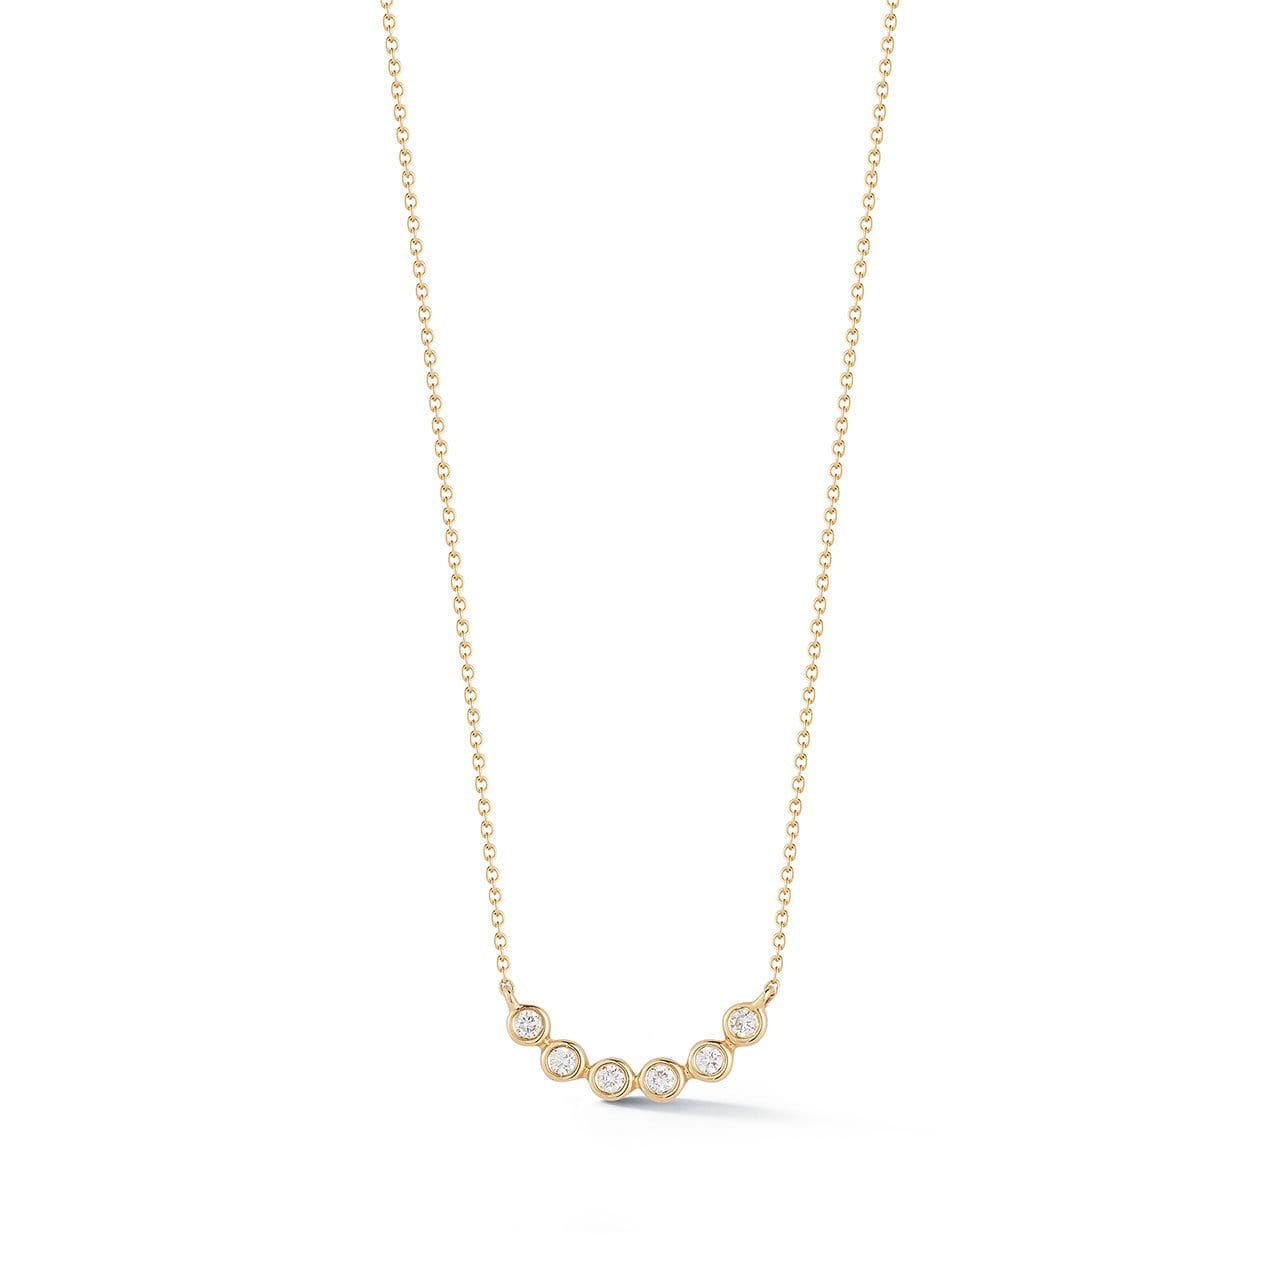 Vincents Fine Jewelry | Dana Rebecca | Lulu Jack Bezel Curve Necklace